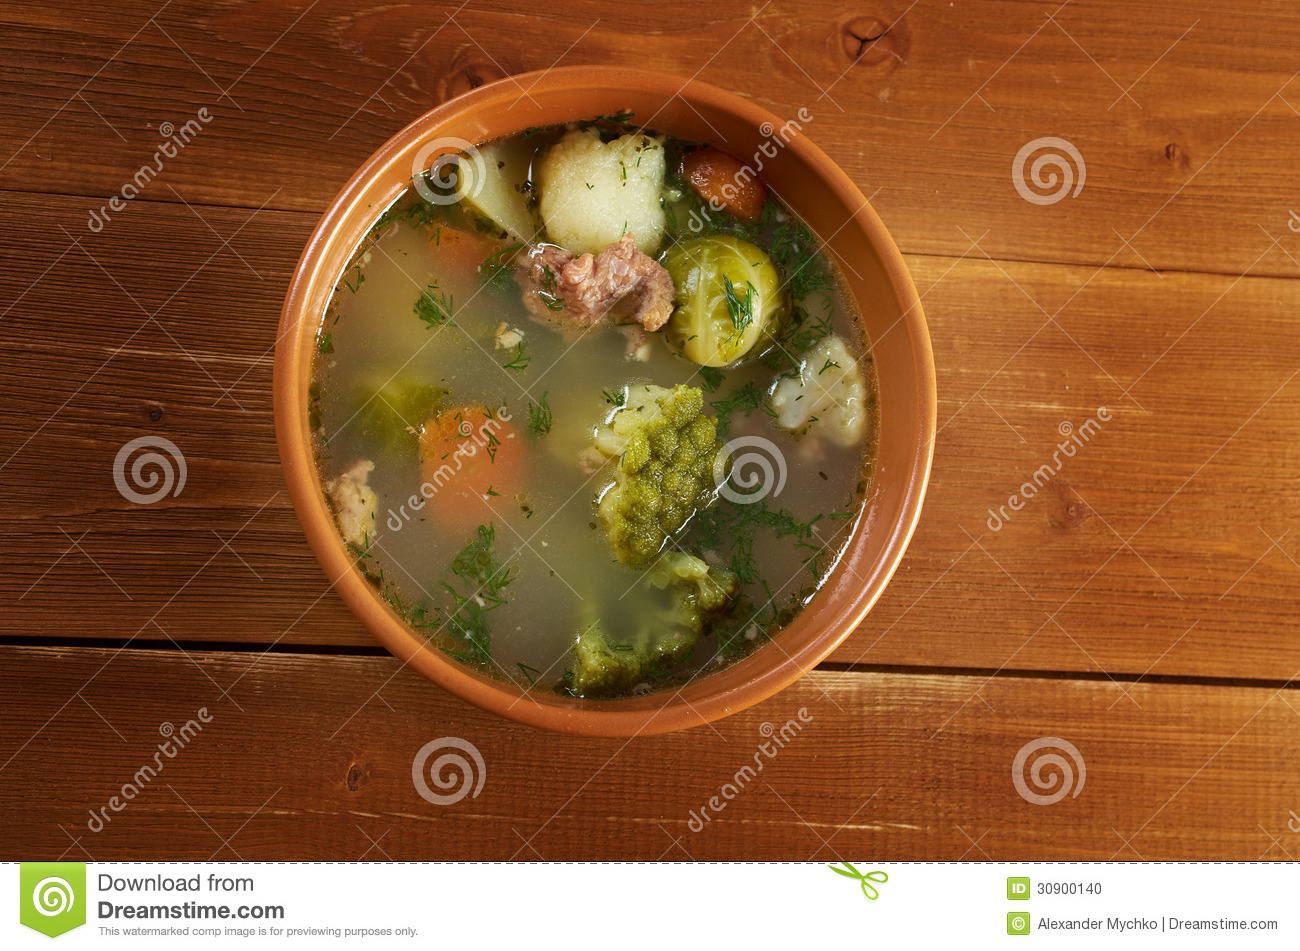 Italian farm-style country vegetables soup with broccoli.